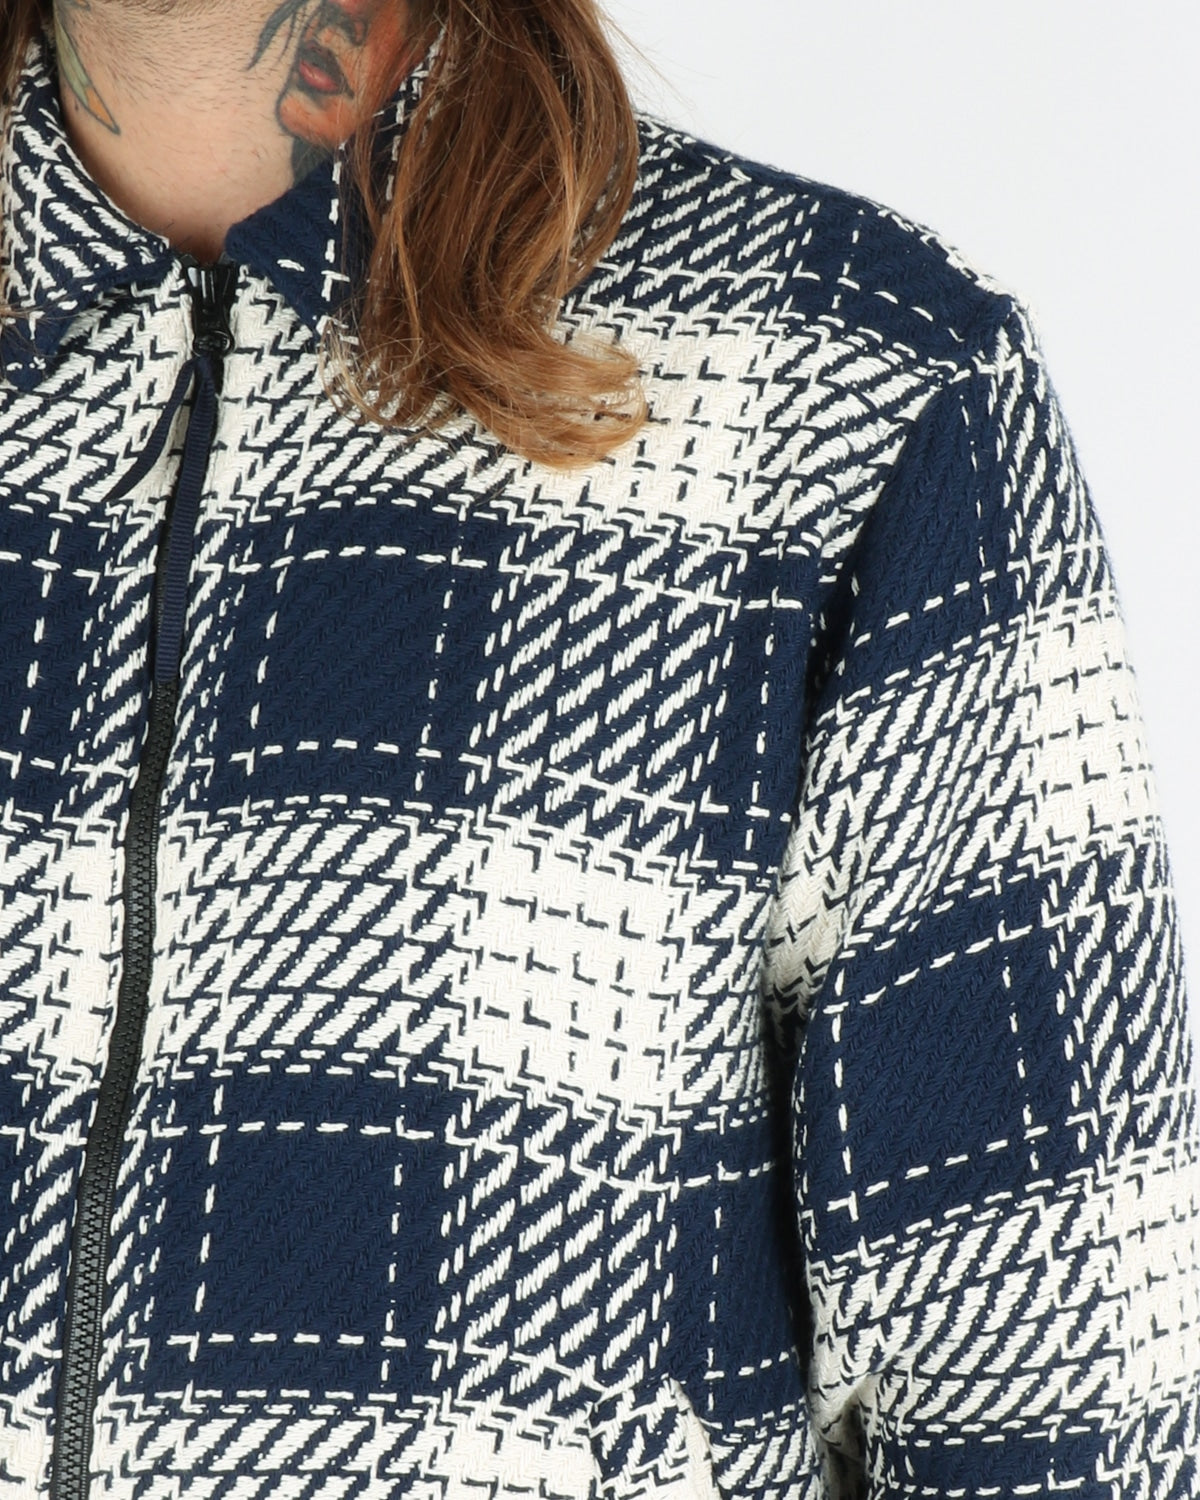 soulland_mapp light zip jacquard jacket_navy white_view_3_3